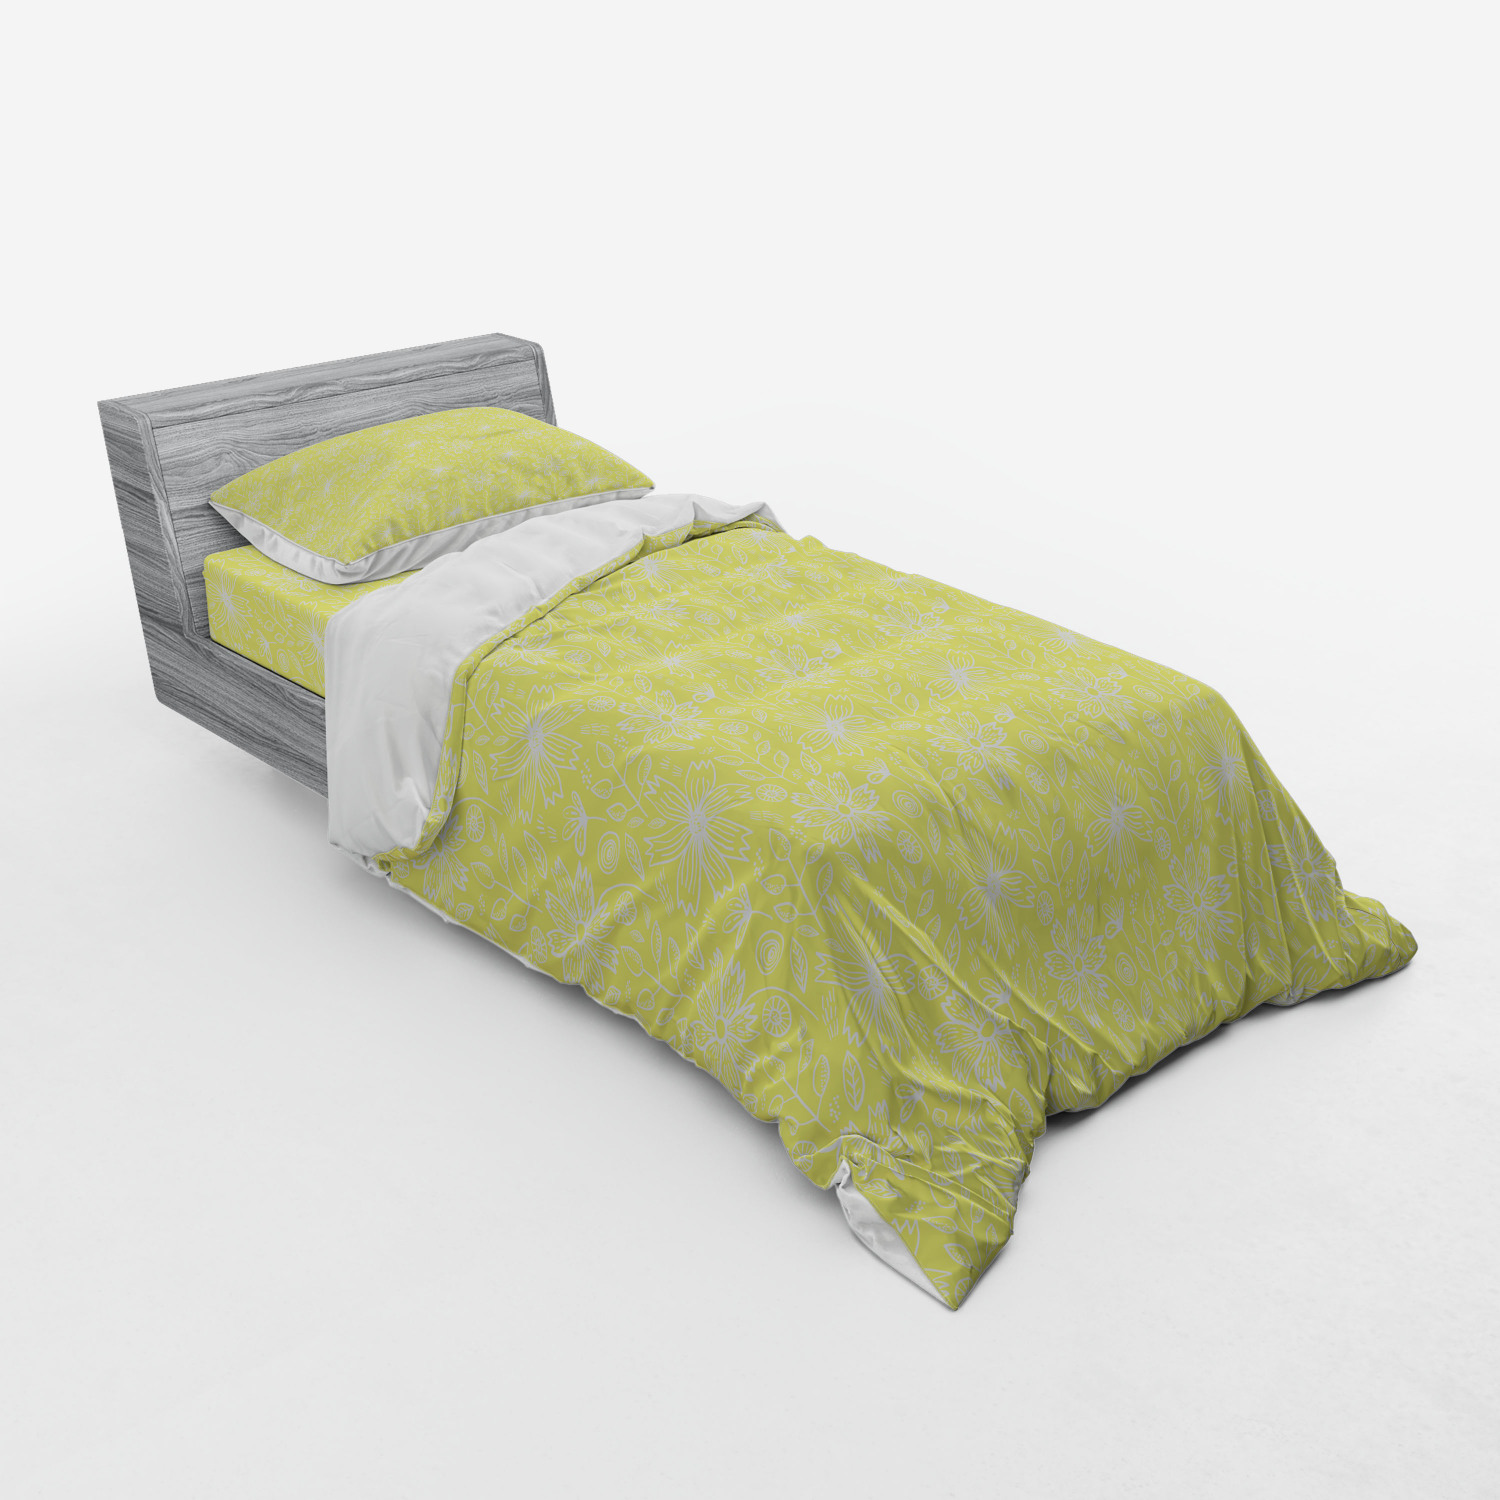 thumbnail 149 - Ambesonne Summer Bedding Set Duvet Cover Sham Fitted Sheet in 3 Sizes